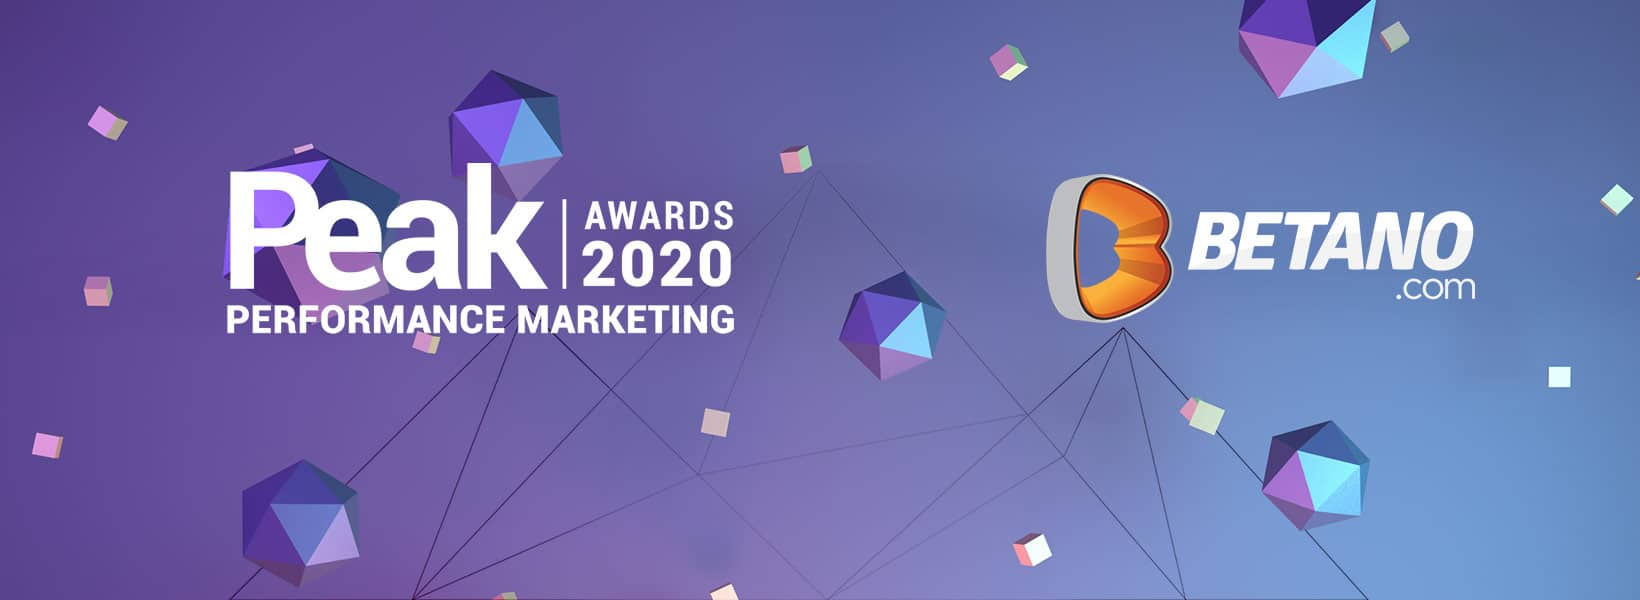 peak performance marketing awards 2020